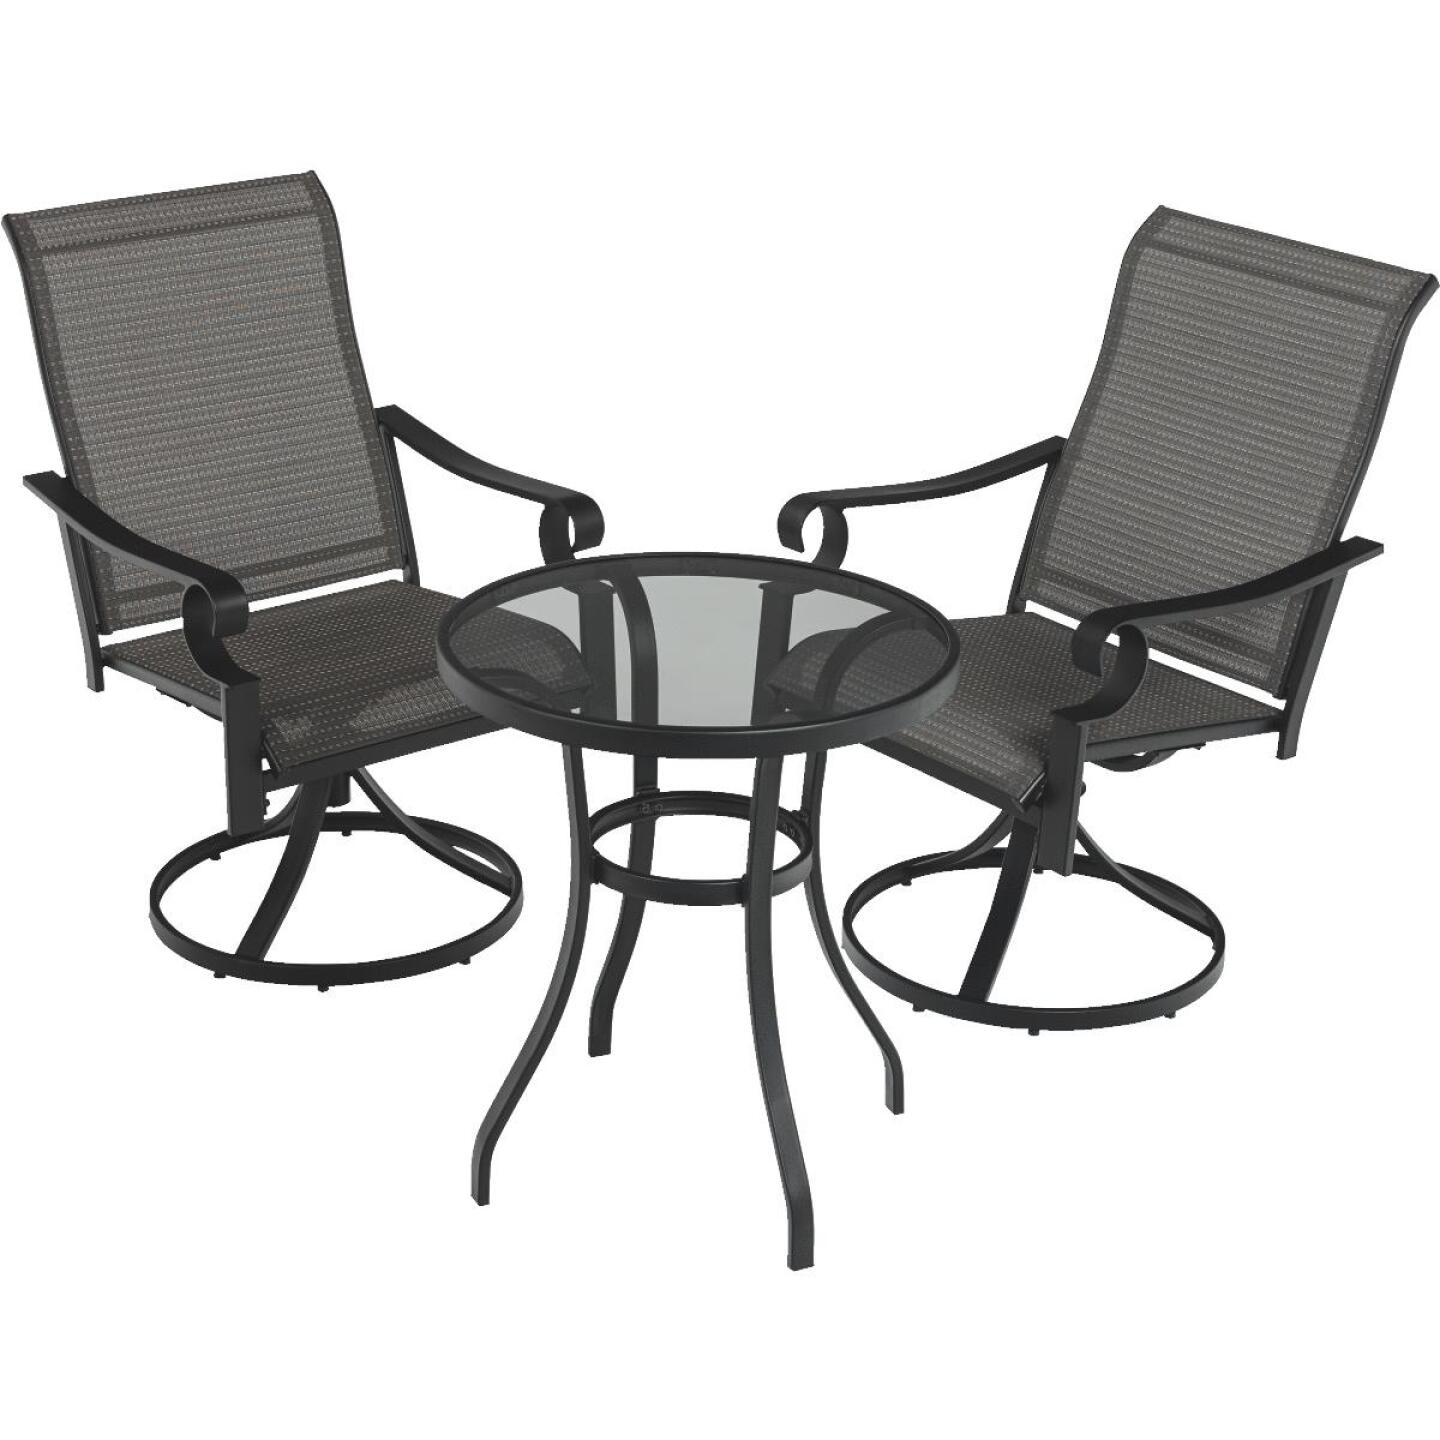 Outdoor Expressions Somerset 3-Piece Bistro Set Image 1